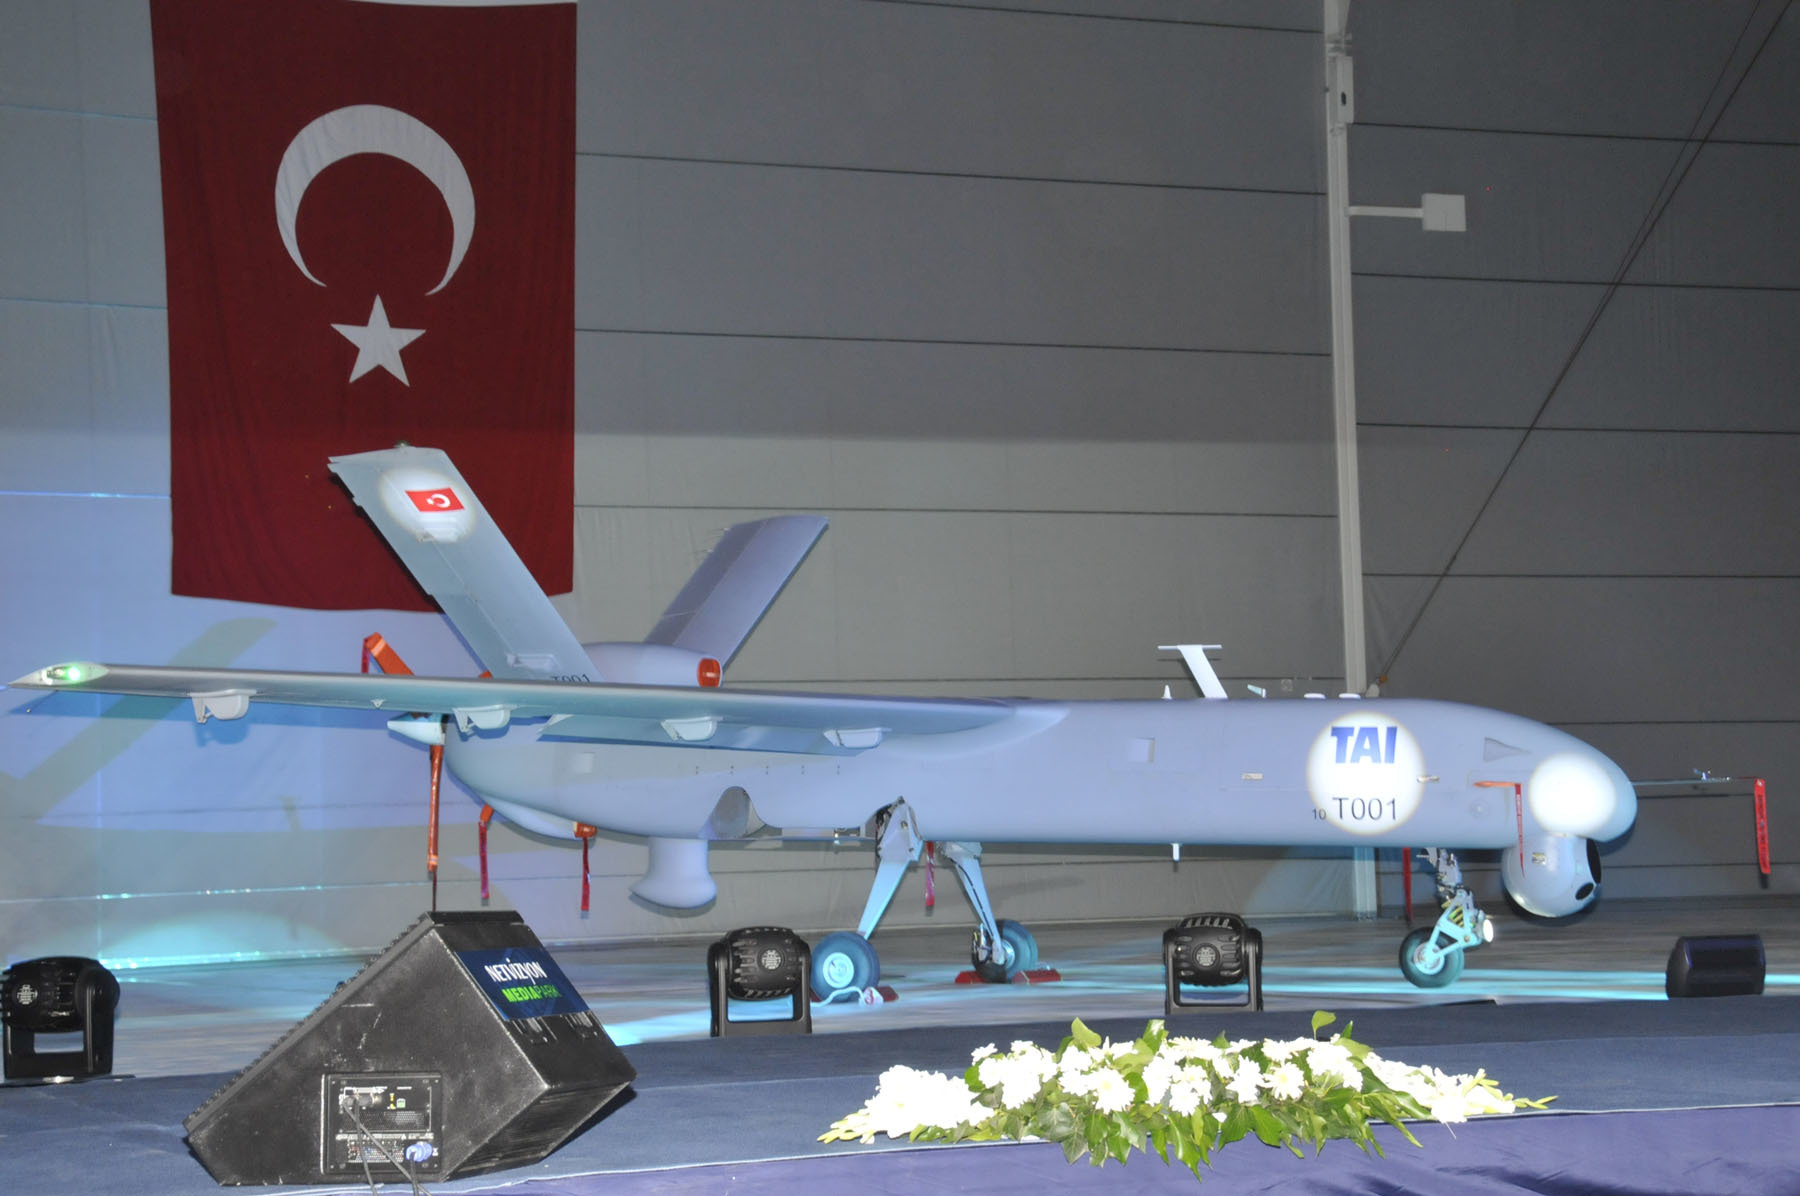 turkish uav drone HD Wallpaper